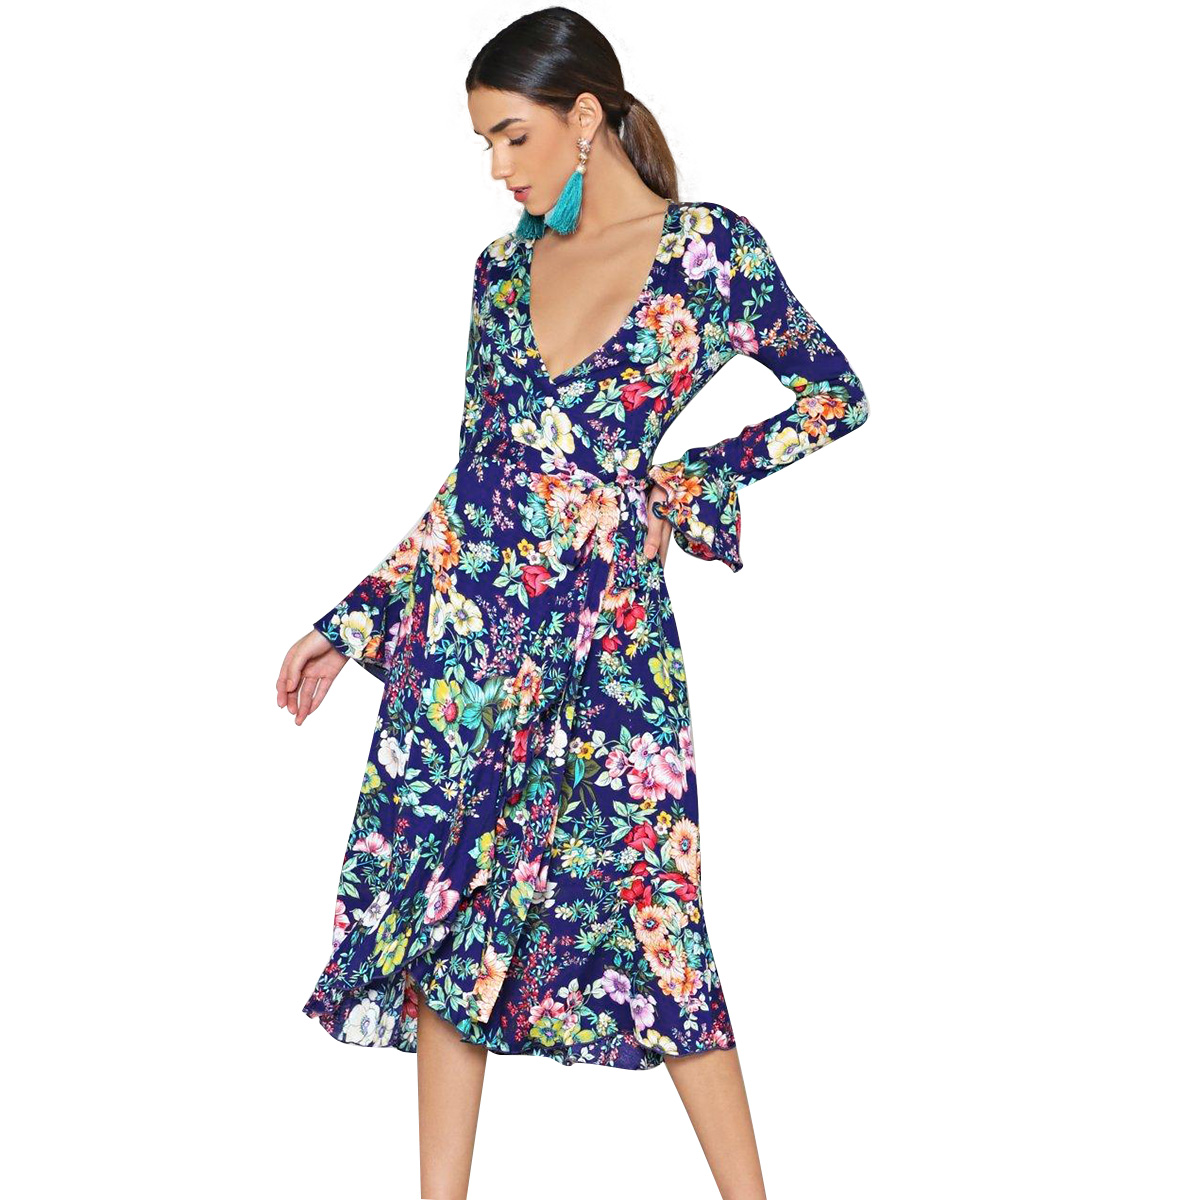 Colorful Floral Print Midi Dress Women 2019 Bohemian V neck Flare Long Sleeve Dress Ladies Boho Hippie Beach Retro Chic Dress